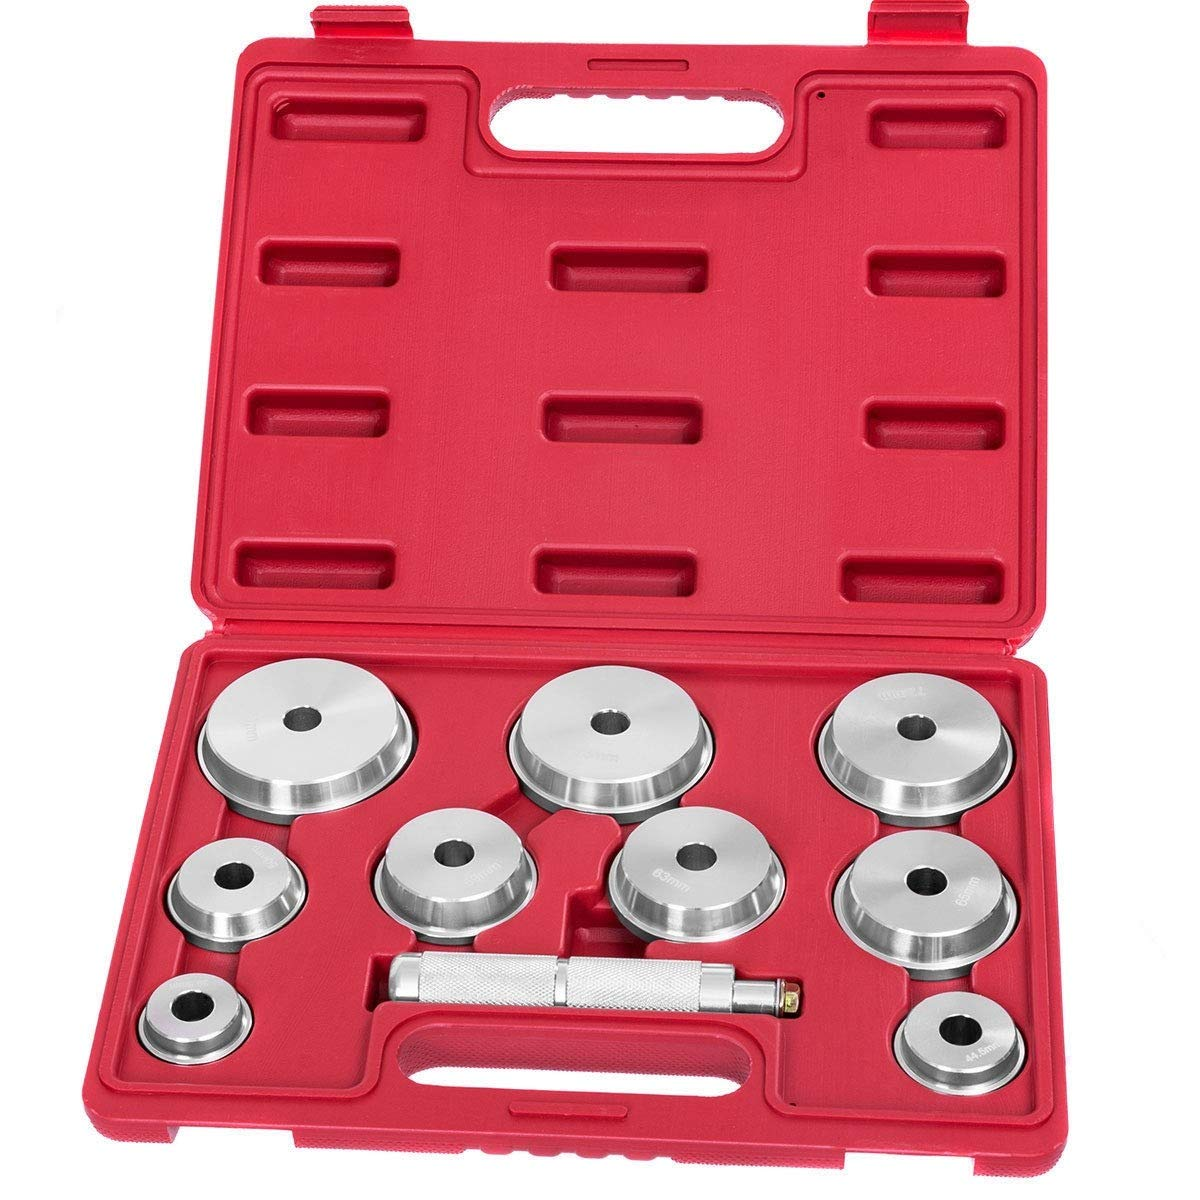 LordBee 10 pcs New Aluminum Alloy Wheel Bearing Race and Seal Driver Set Storage Carrying Case